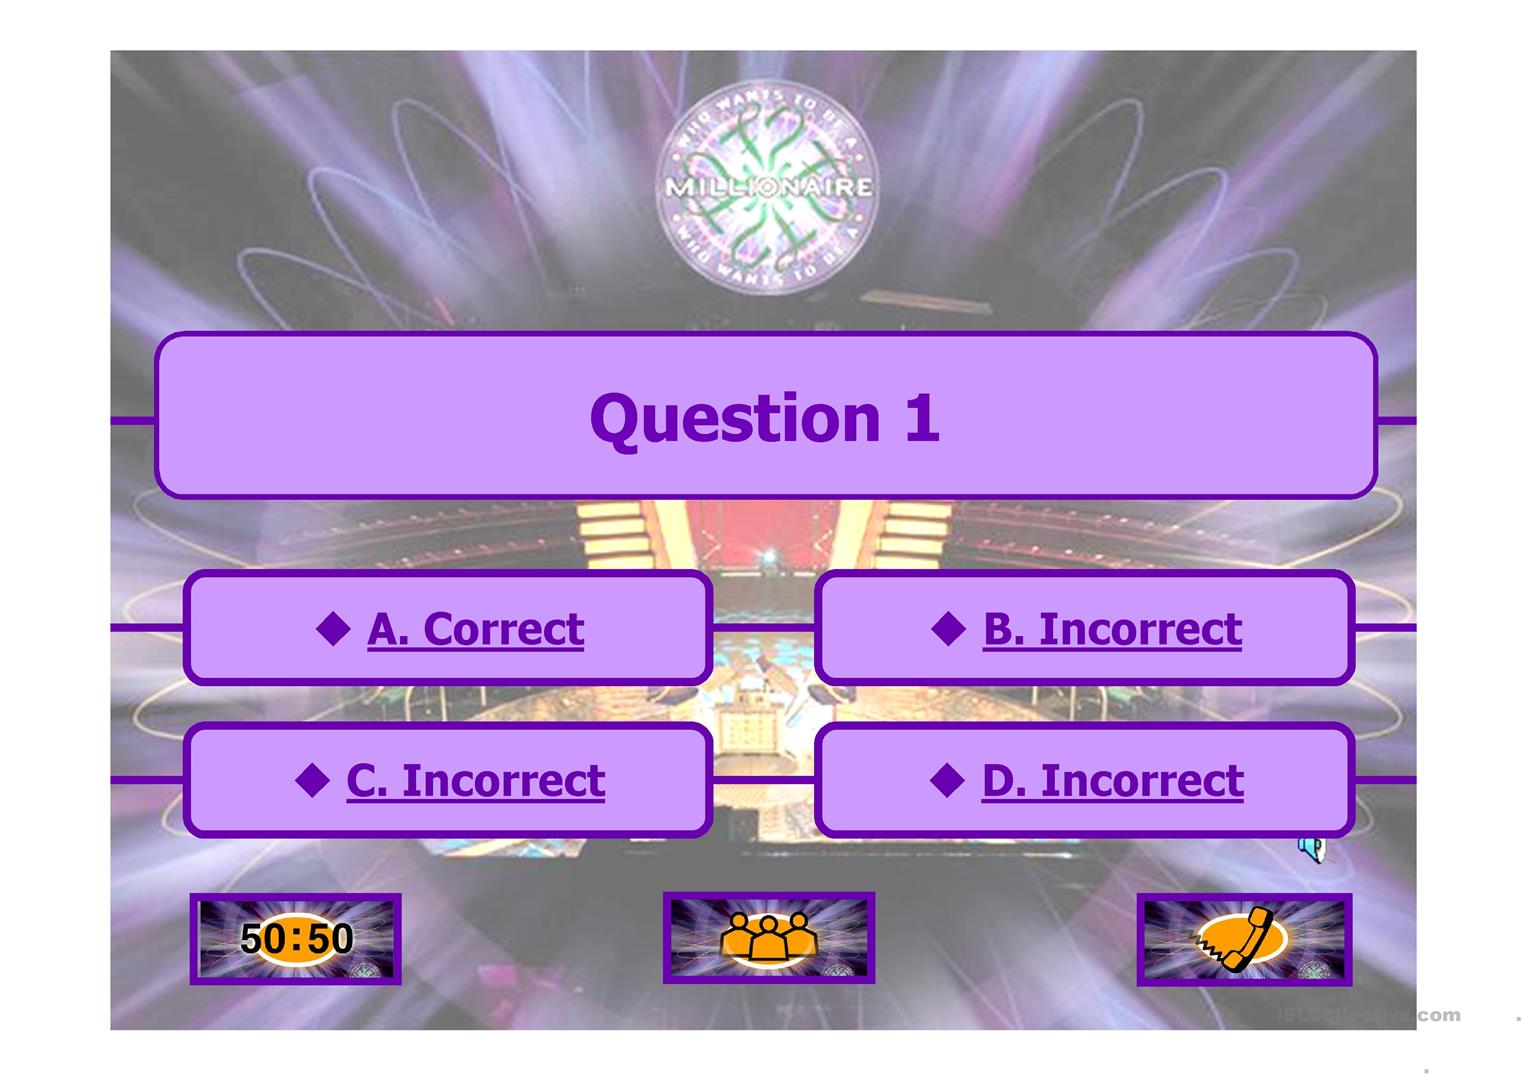 powerpoint template who wants to be a millionaire image, Powerpoint templates